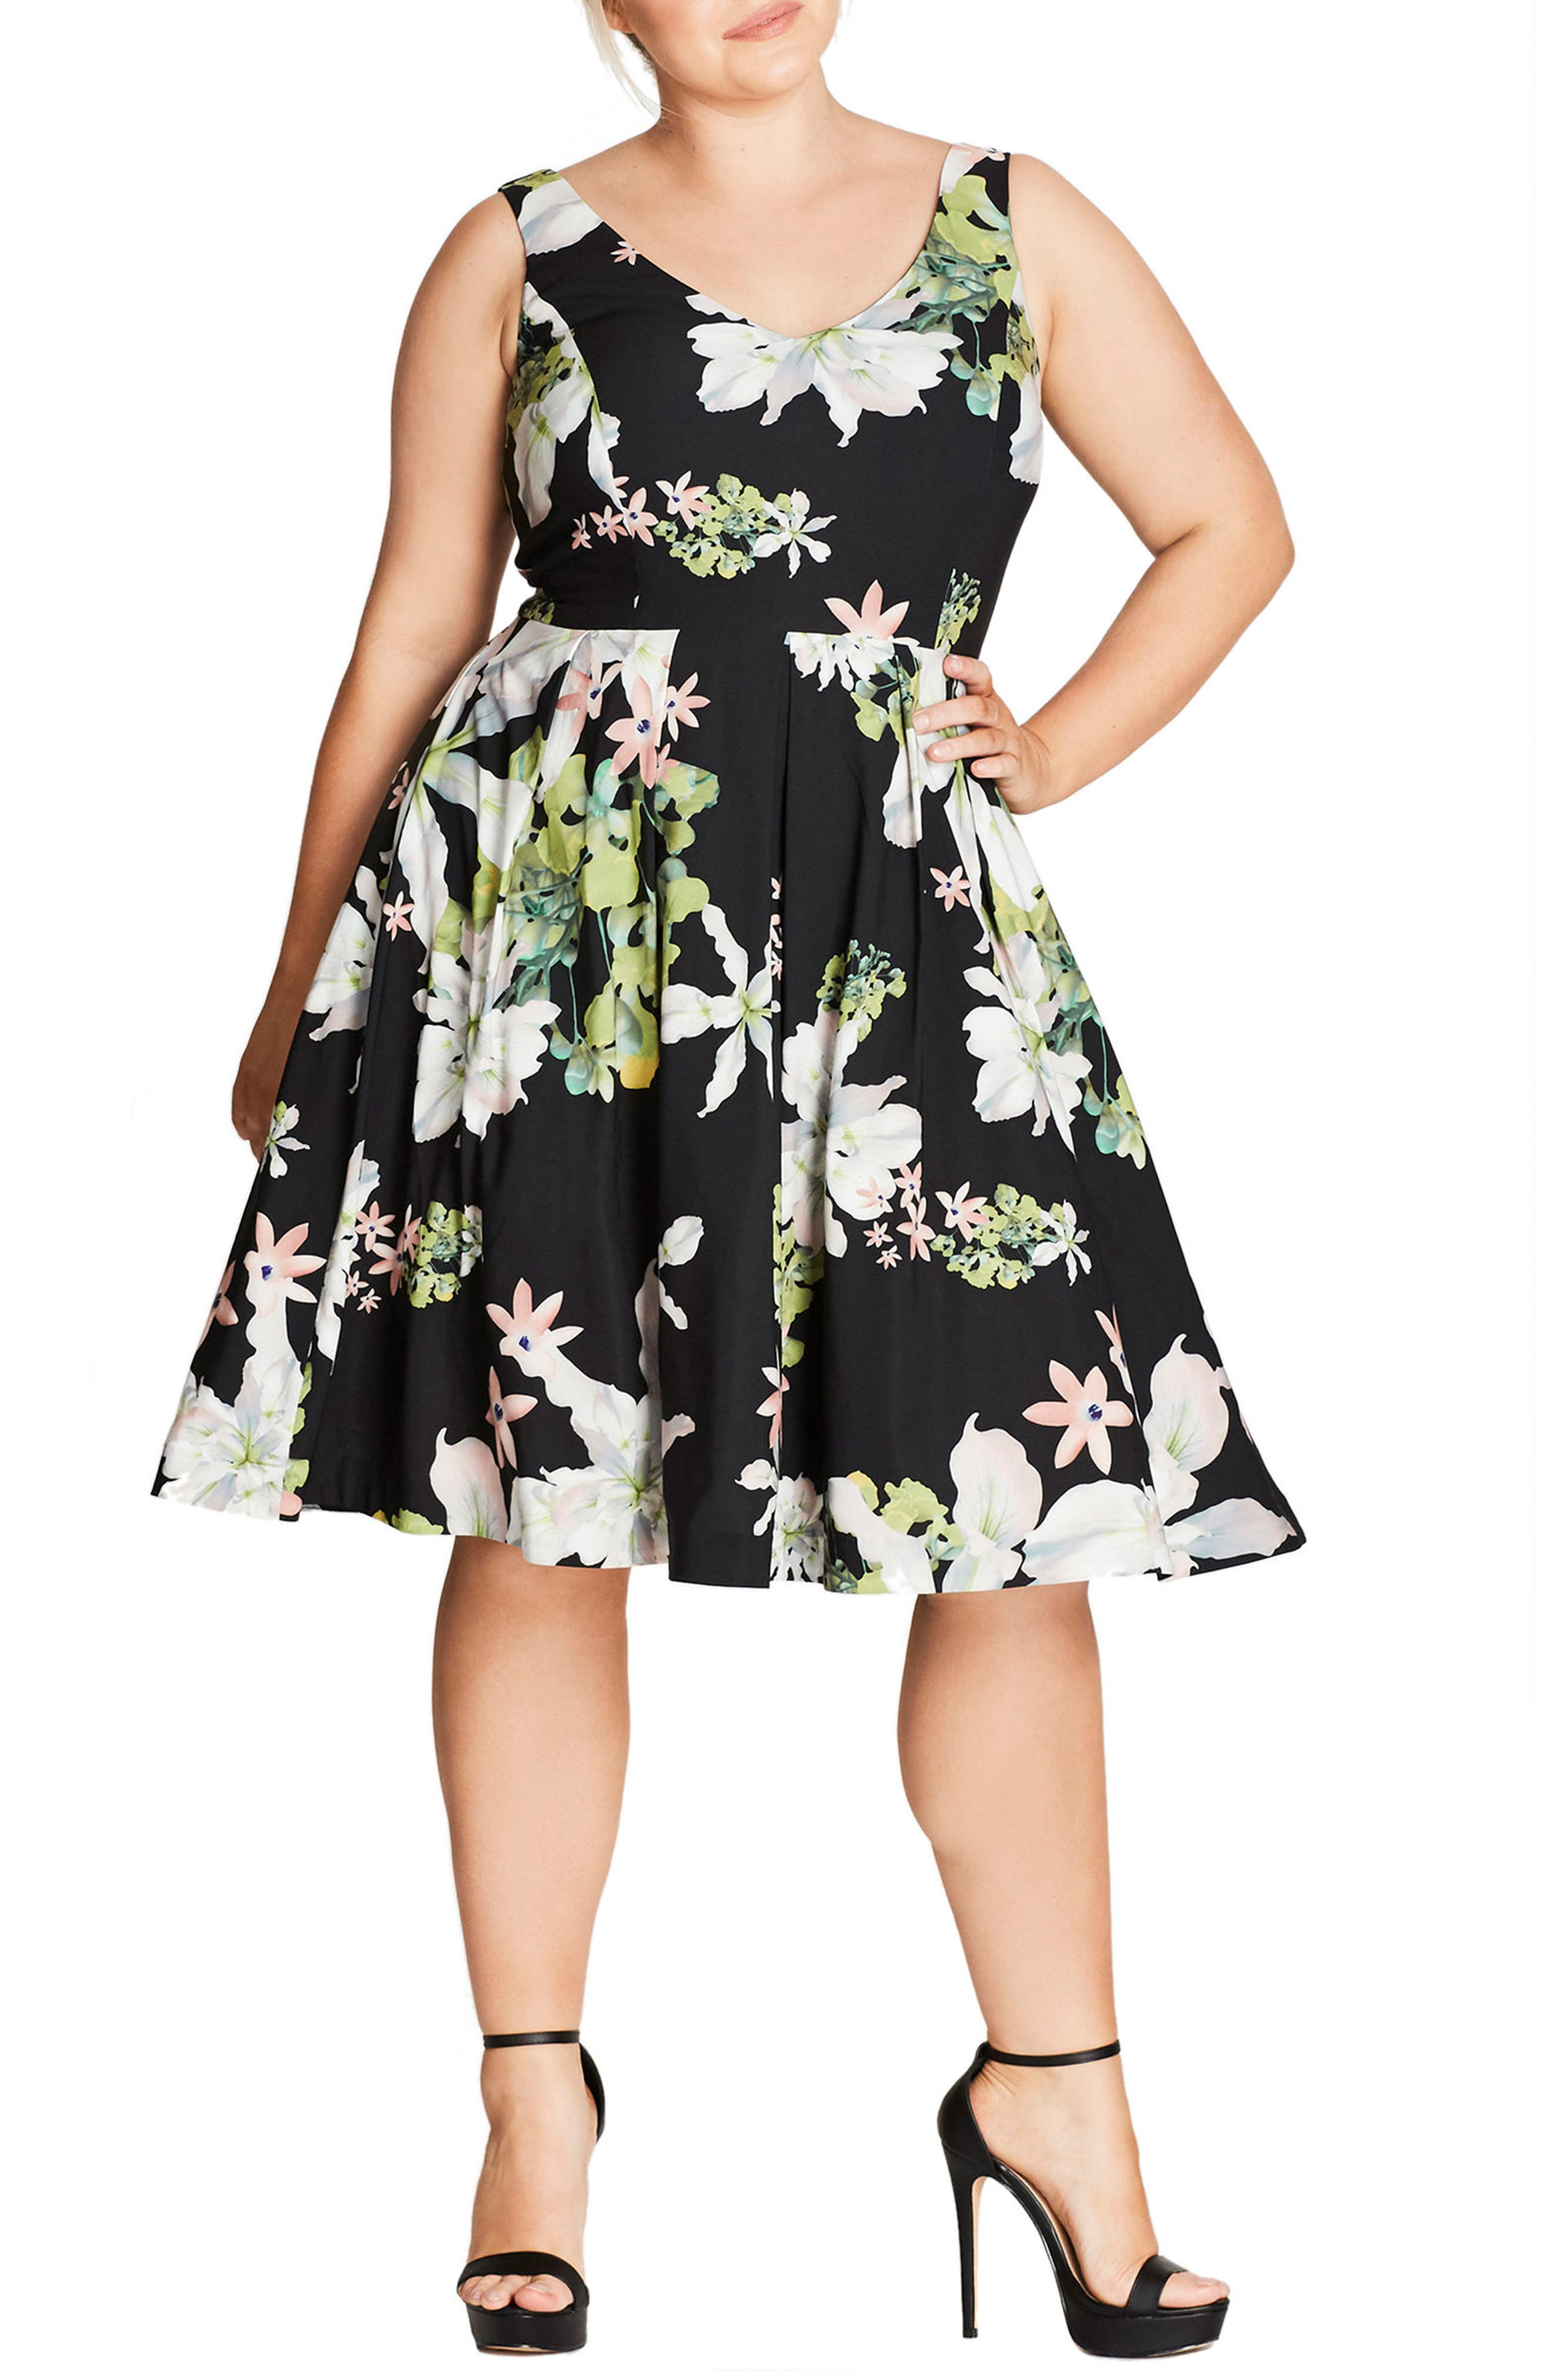 Alternate Image 1 Selected - City Chic Spring Sweetie Fit & Flare Dress (Plus Size)